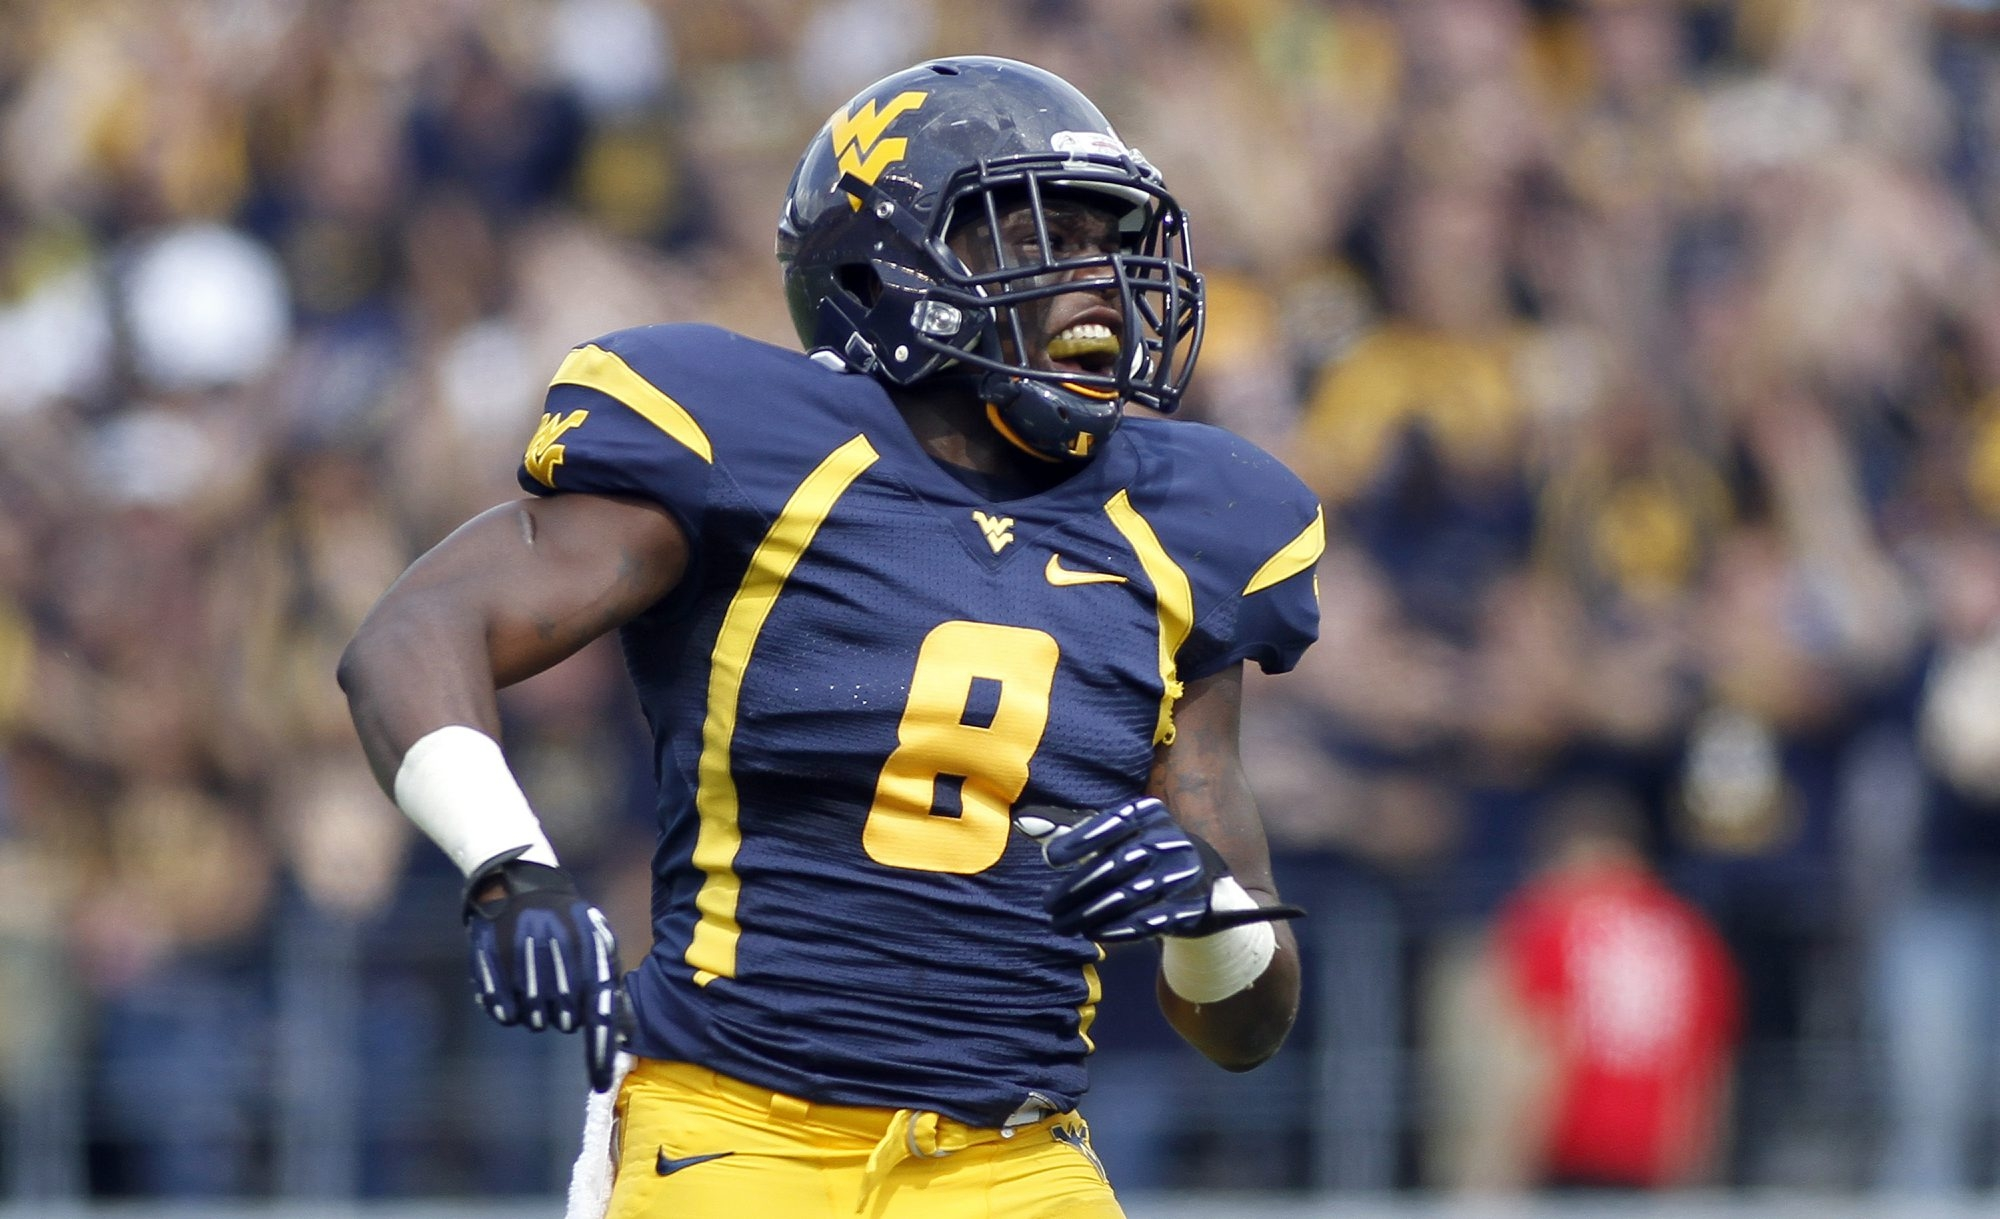 Karl Joseph of the West Virginia Mountaineers is coming off a knee injury.